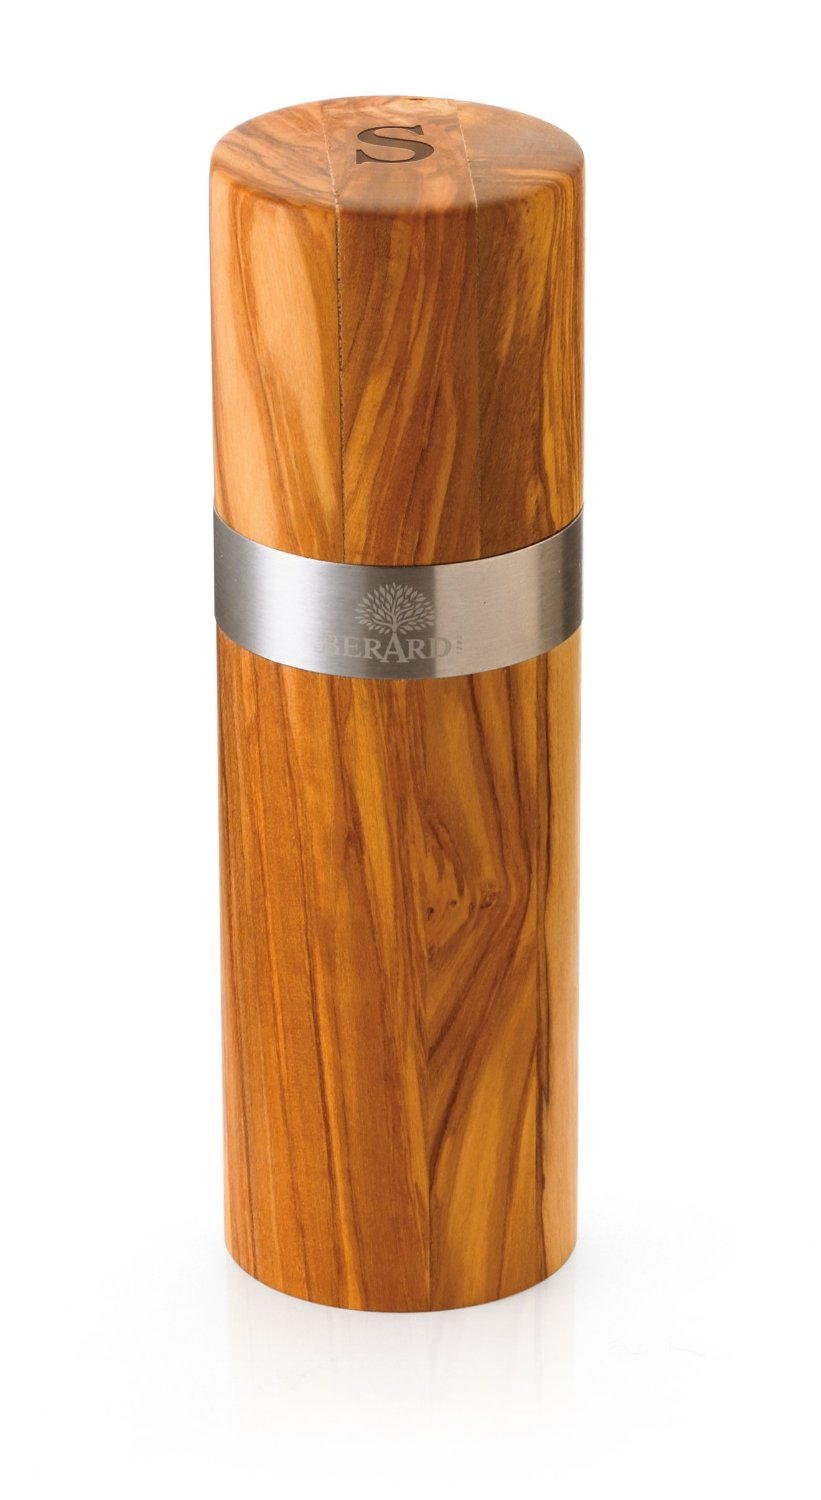 Salt Mill Olive Wood Berard